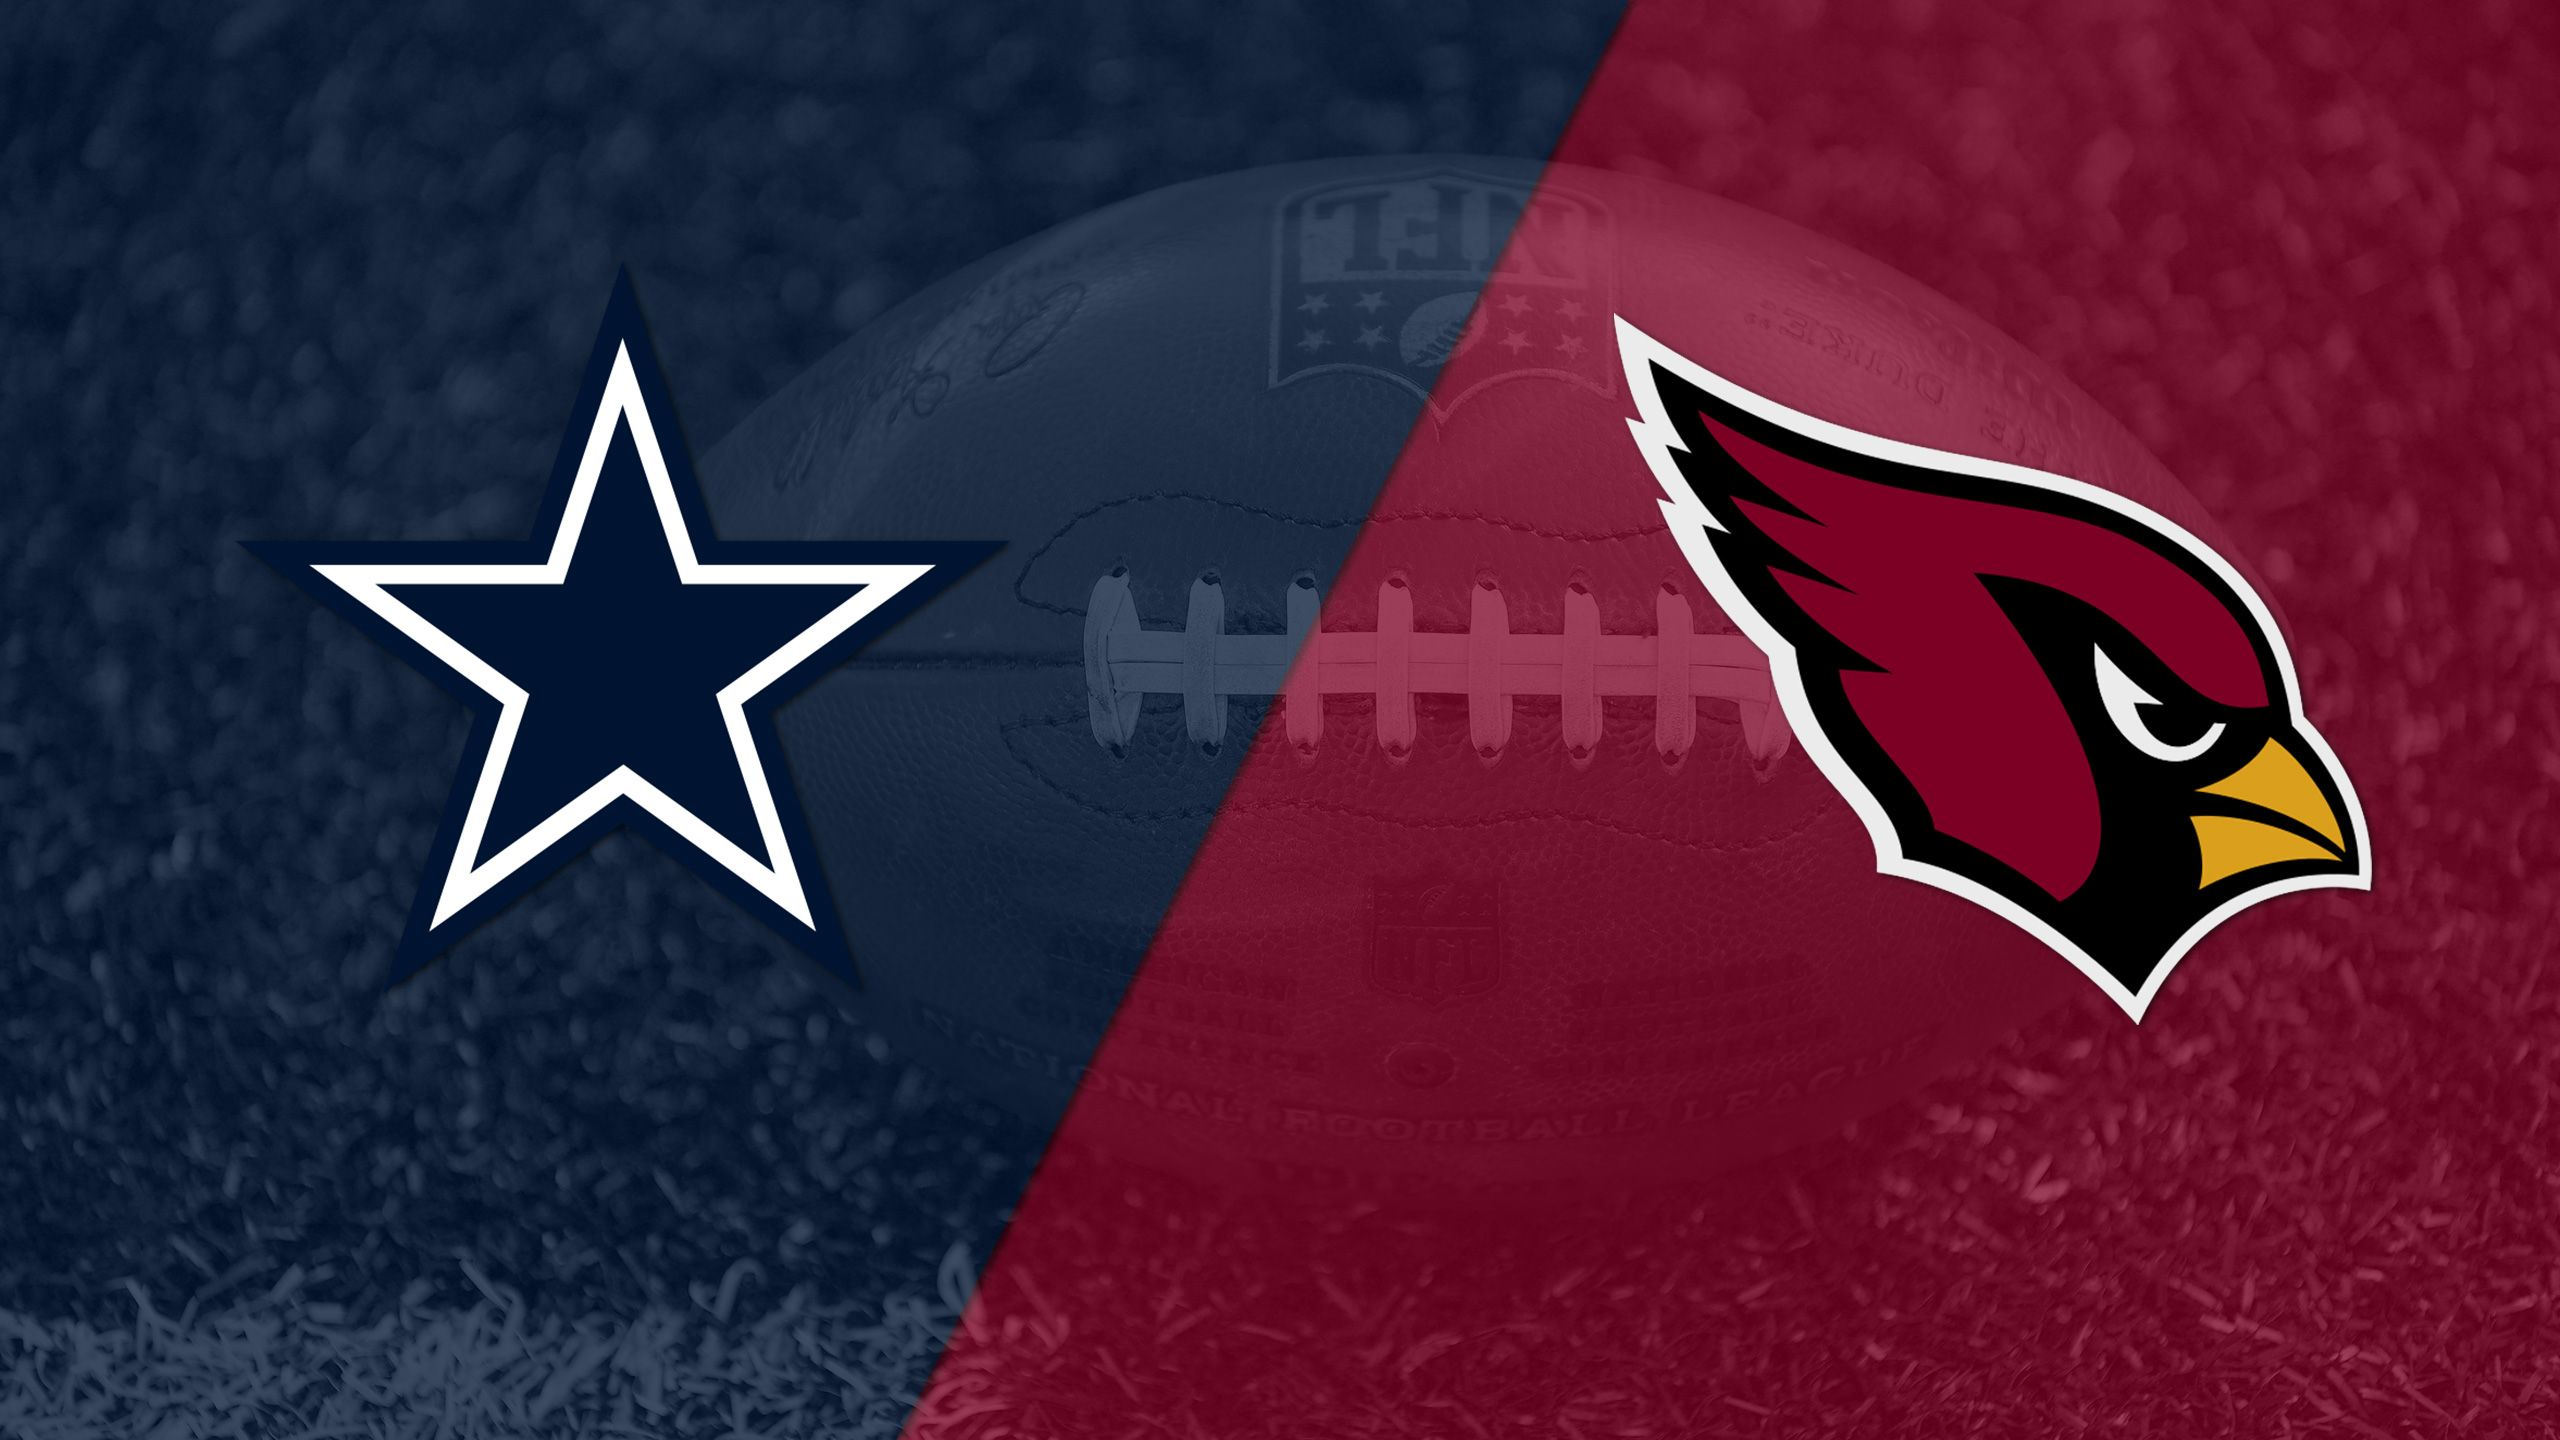 In Spanish - Dallas Cowboys vs. Arizona Cardinals